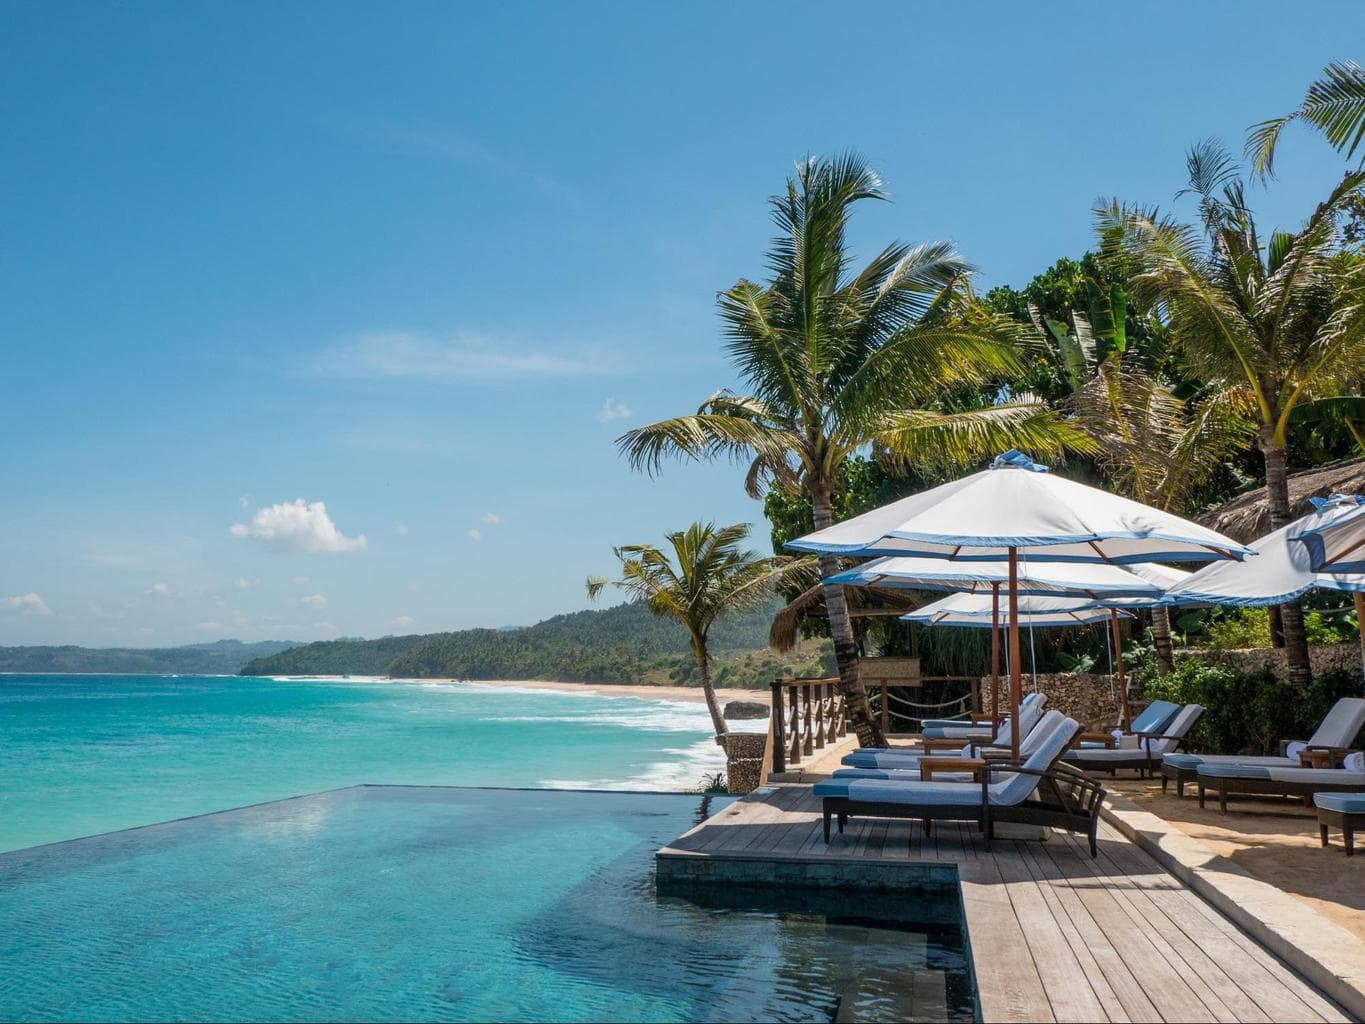 Infinity pool with beach